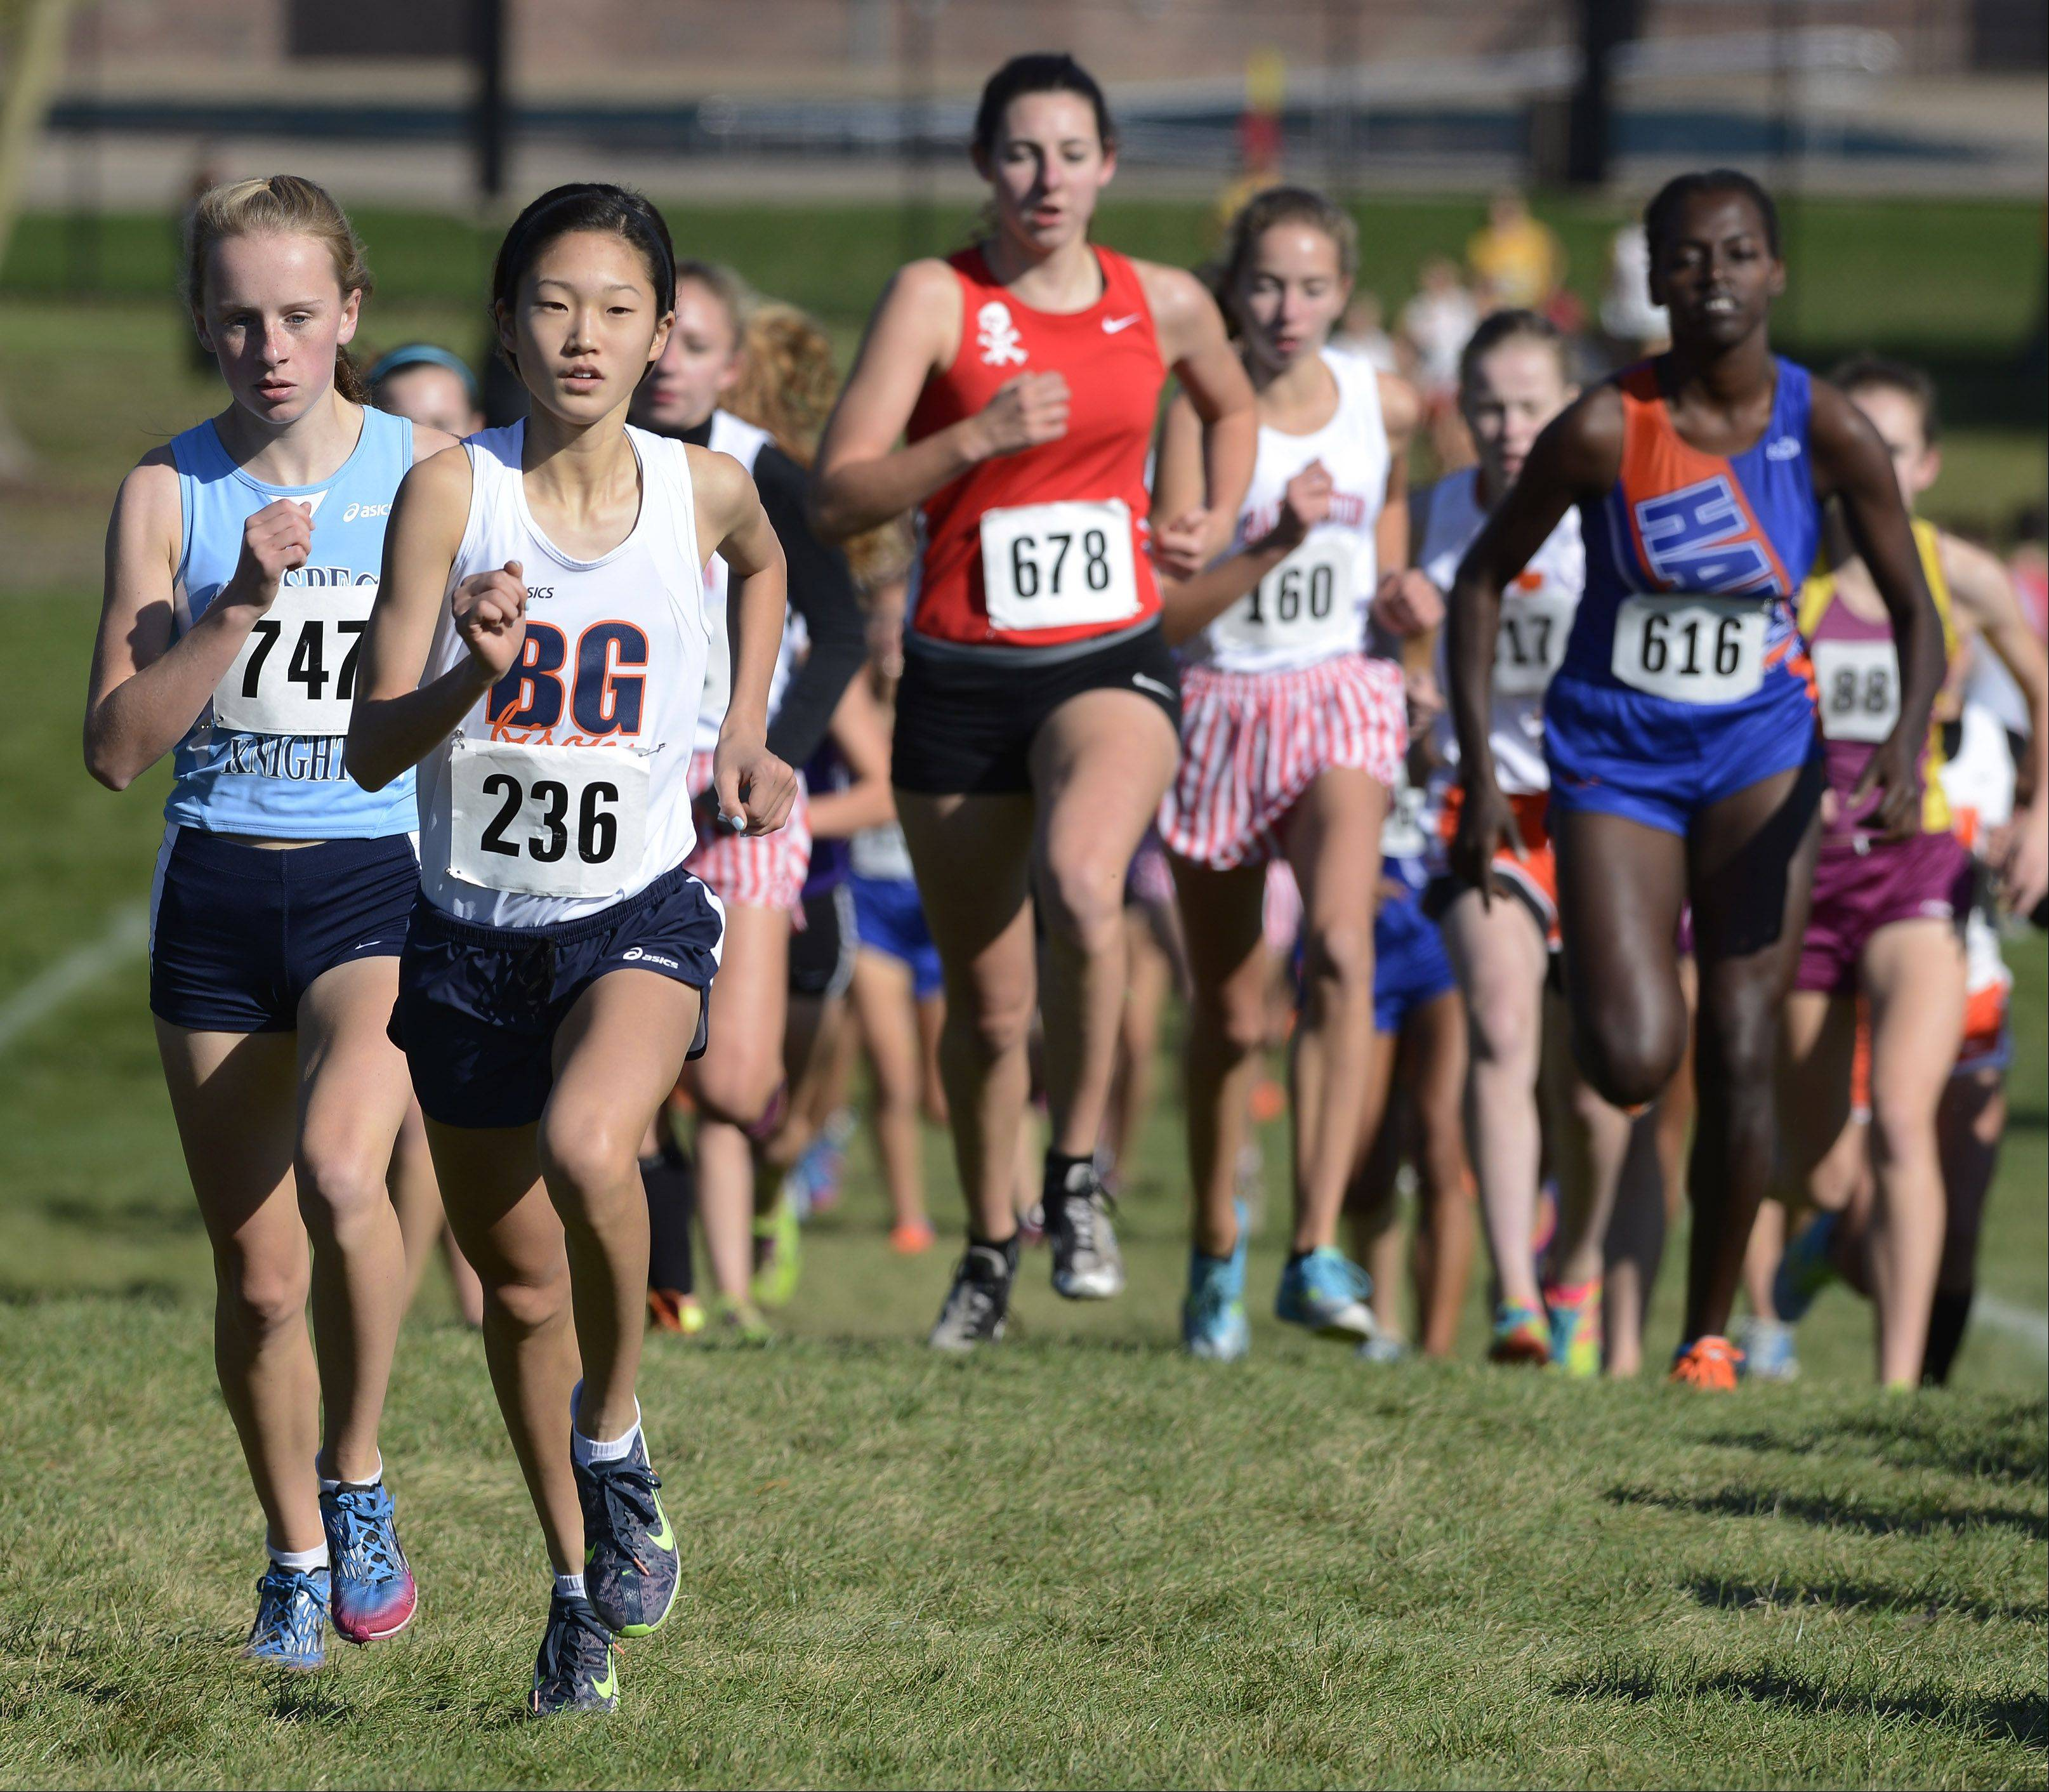 JOE LEWNARD/jlewnard@dailyherald.comBuffalo Grove's Kaitlyn Ko, who went on to win the race, has an early lead during the Mid-Suburban League cross country meet at Willow Stream Park in Buffalo Grove Saturday. At left is Prospect's Brooke Wilson, who finished 12th.